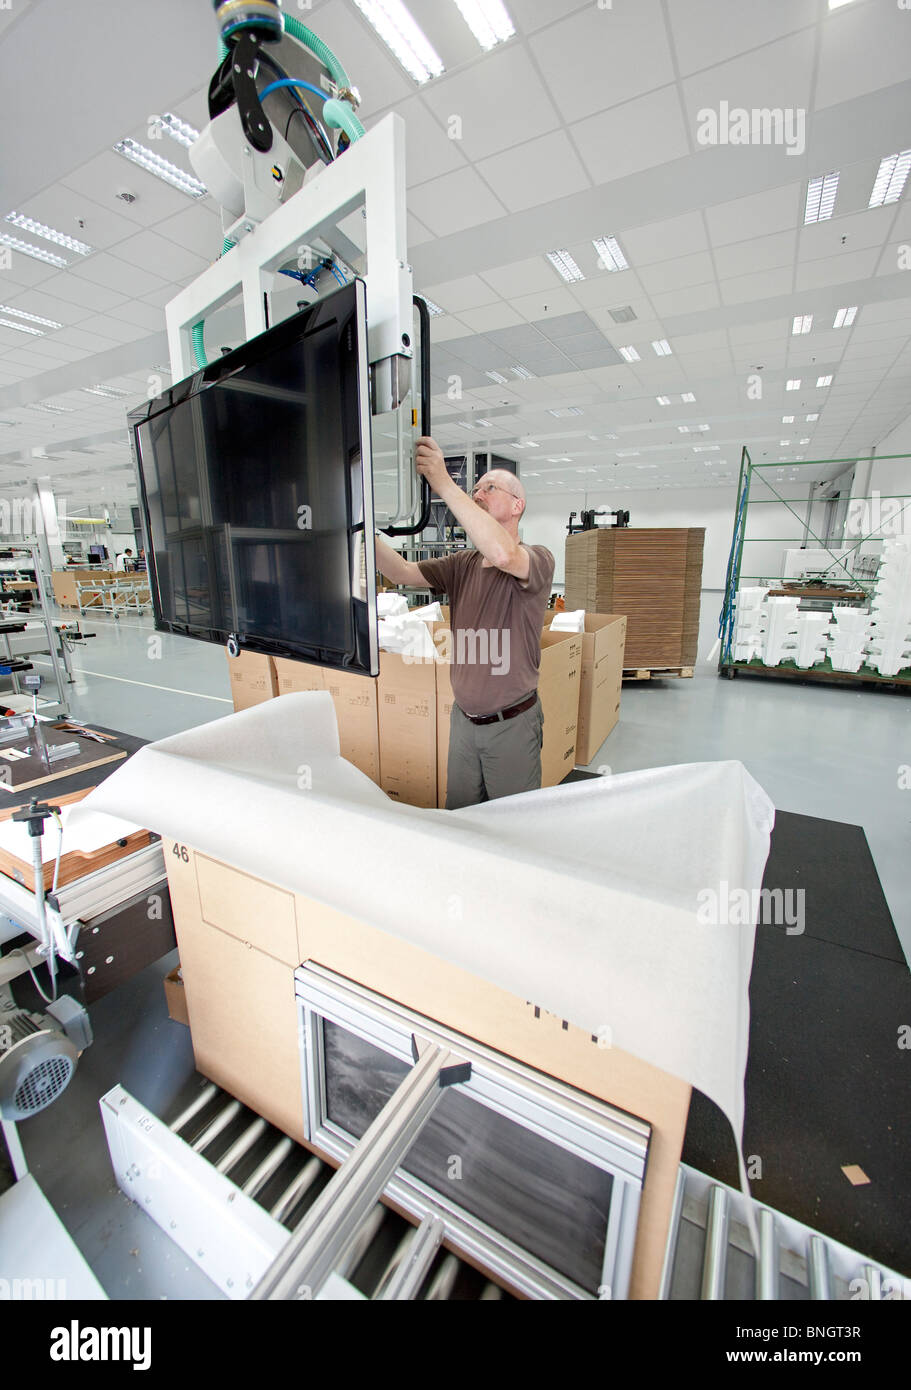 Production of high-value flat screen LCD television sets by Loewe AG: screens ready for shipping, Kronach, Germany - Stock Image